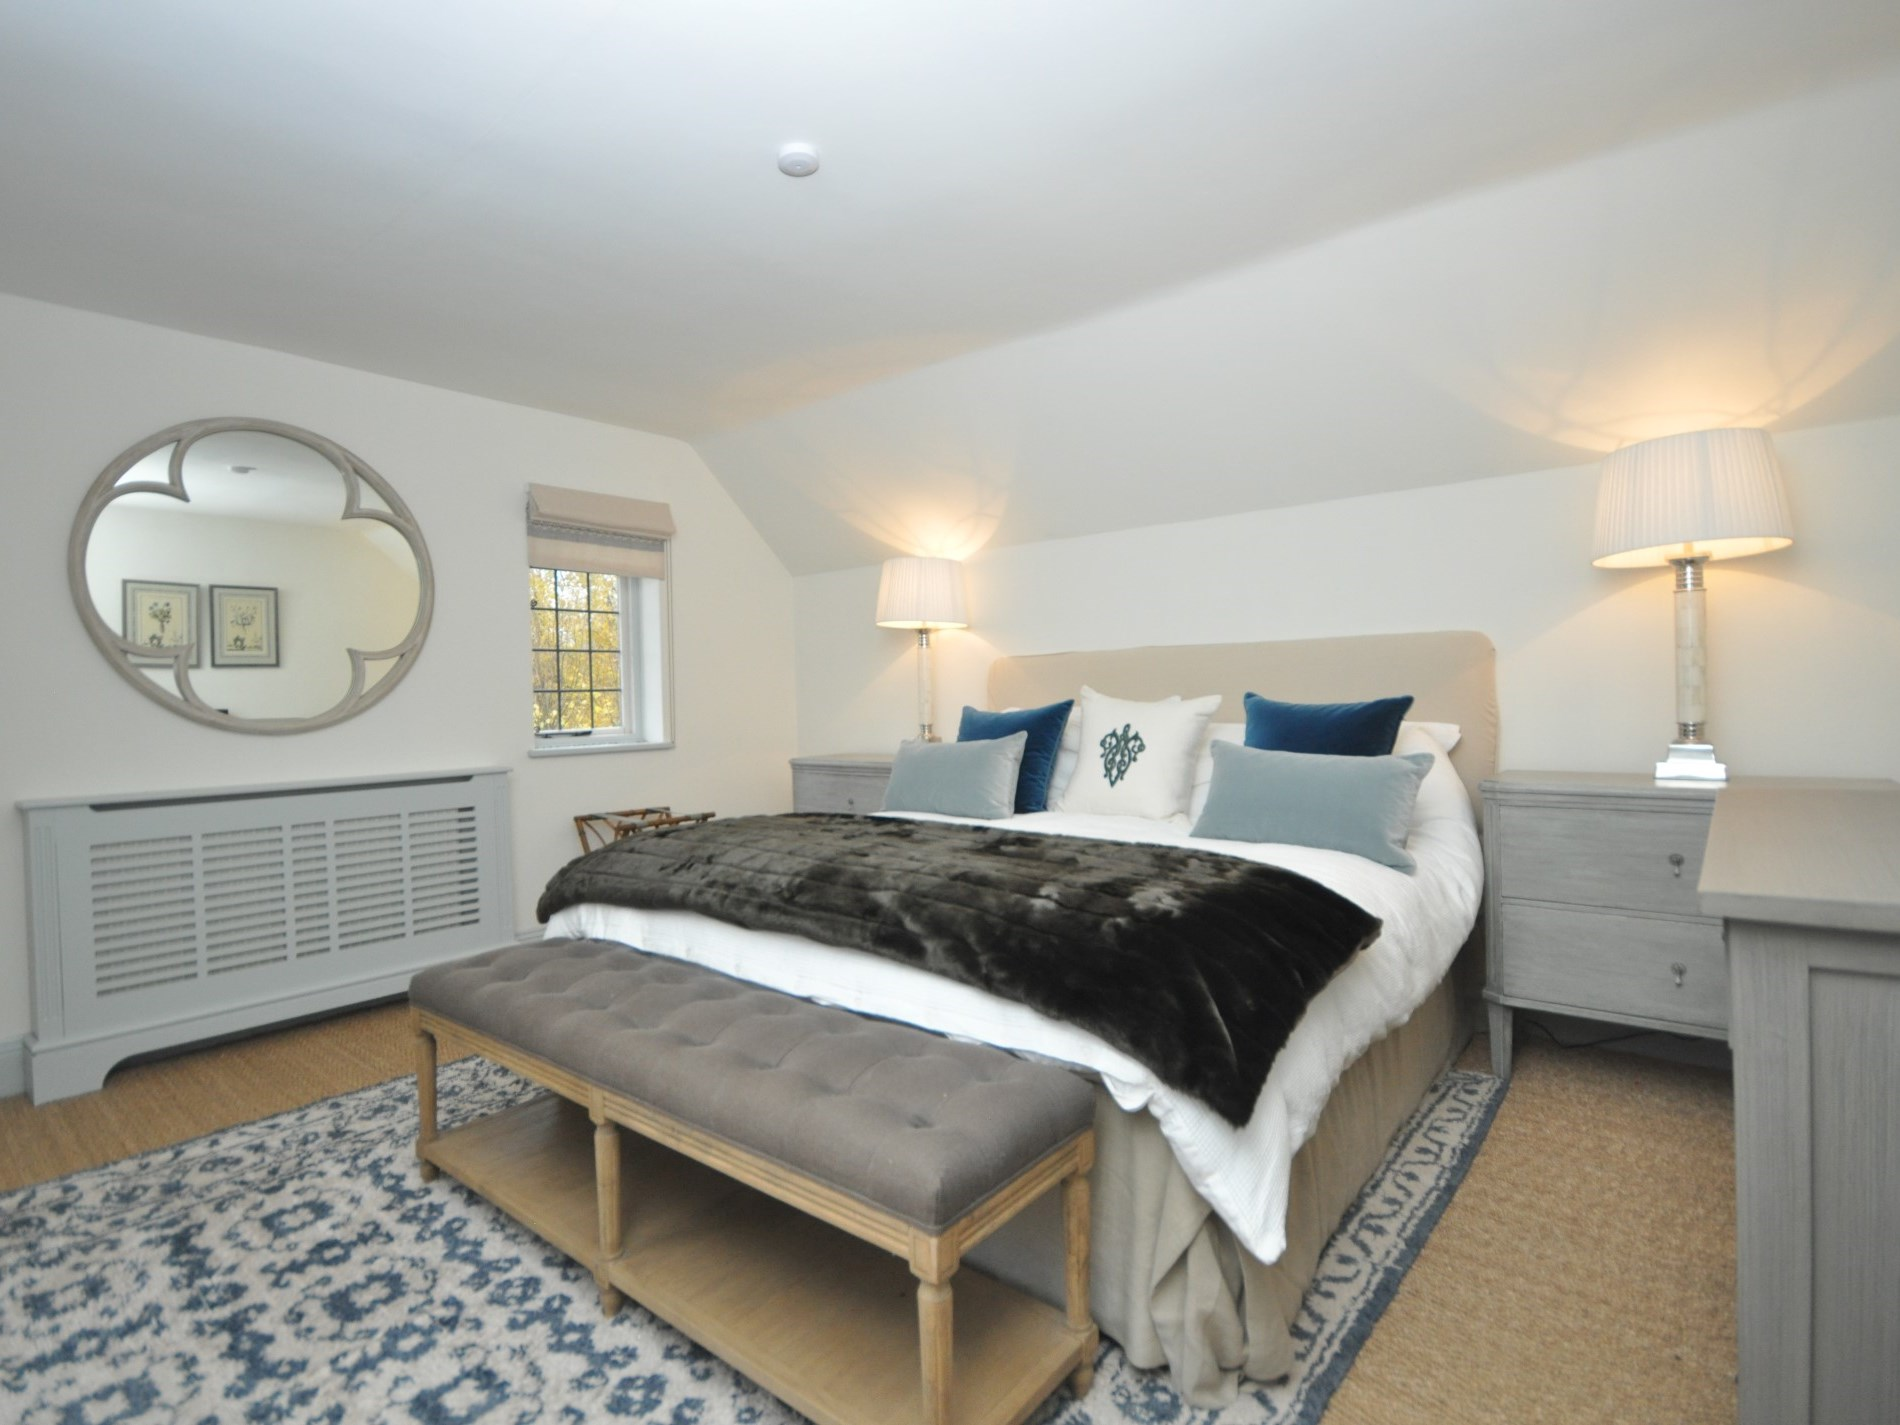 Enjoy a perfect nights sleep in this room over looking the gardens